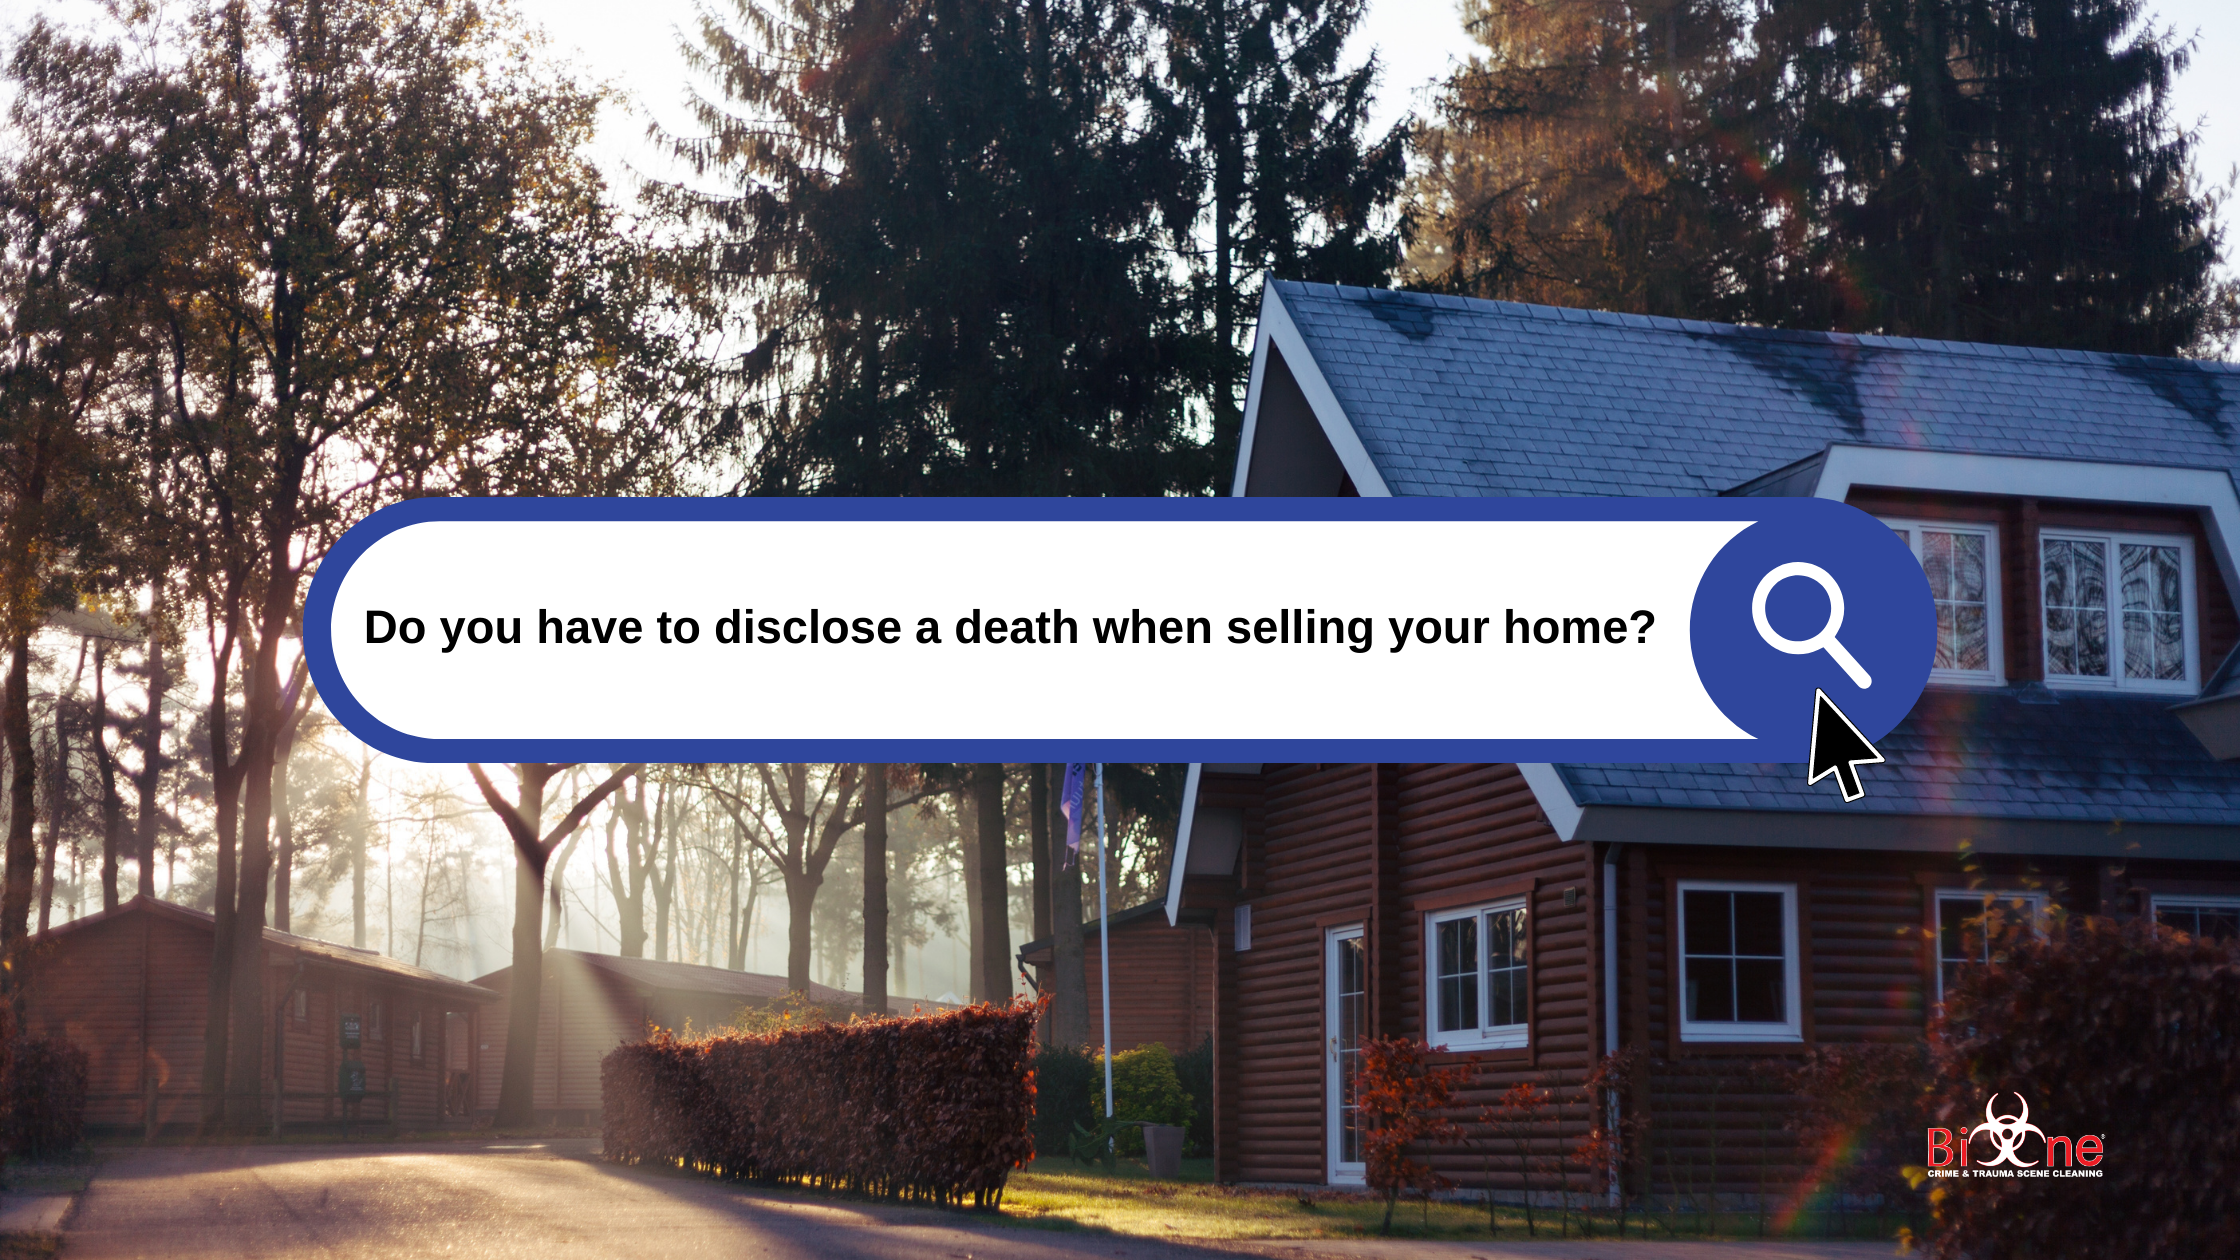 In Colorado, Do You Have to Disclose a Death When Selling Your Home?